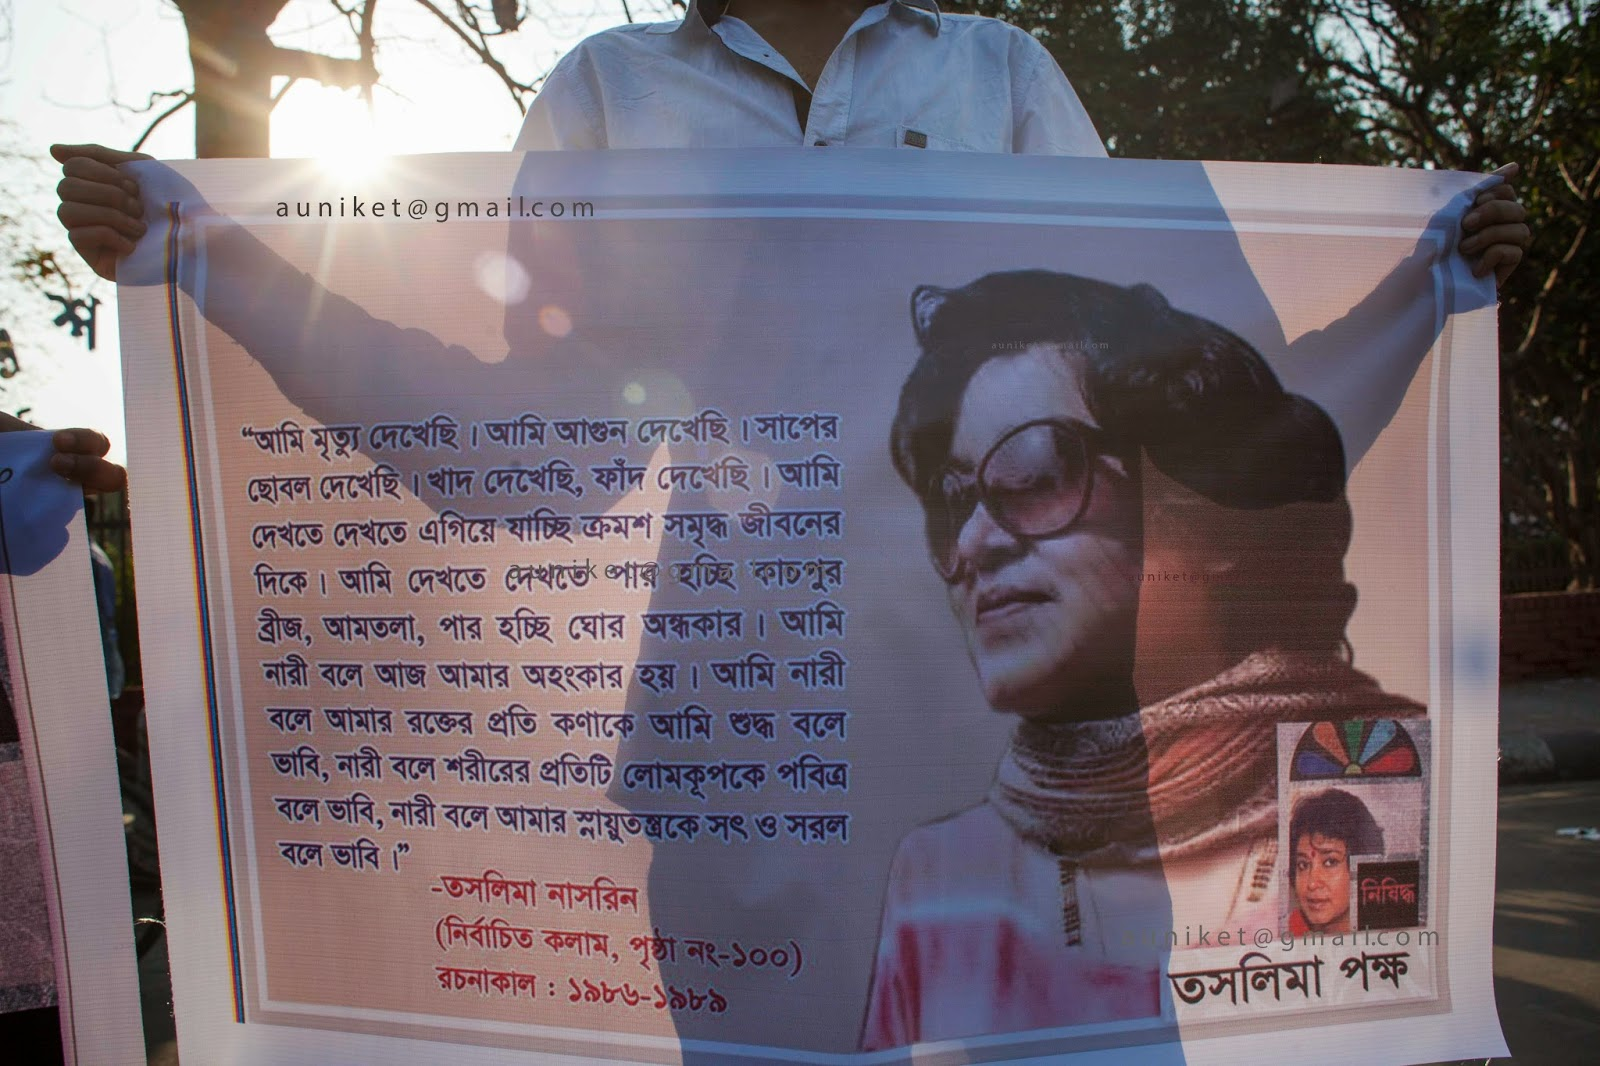 Human chain programme demands return of human rights to controversial Bangladeshi author Taslima Nasrin